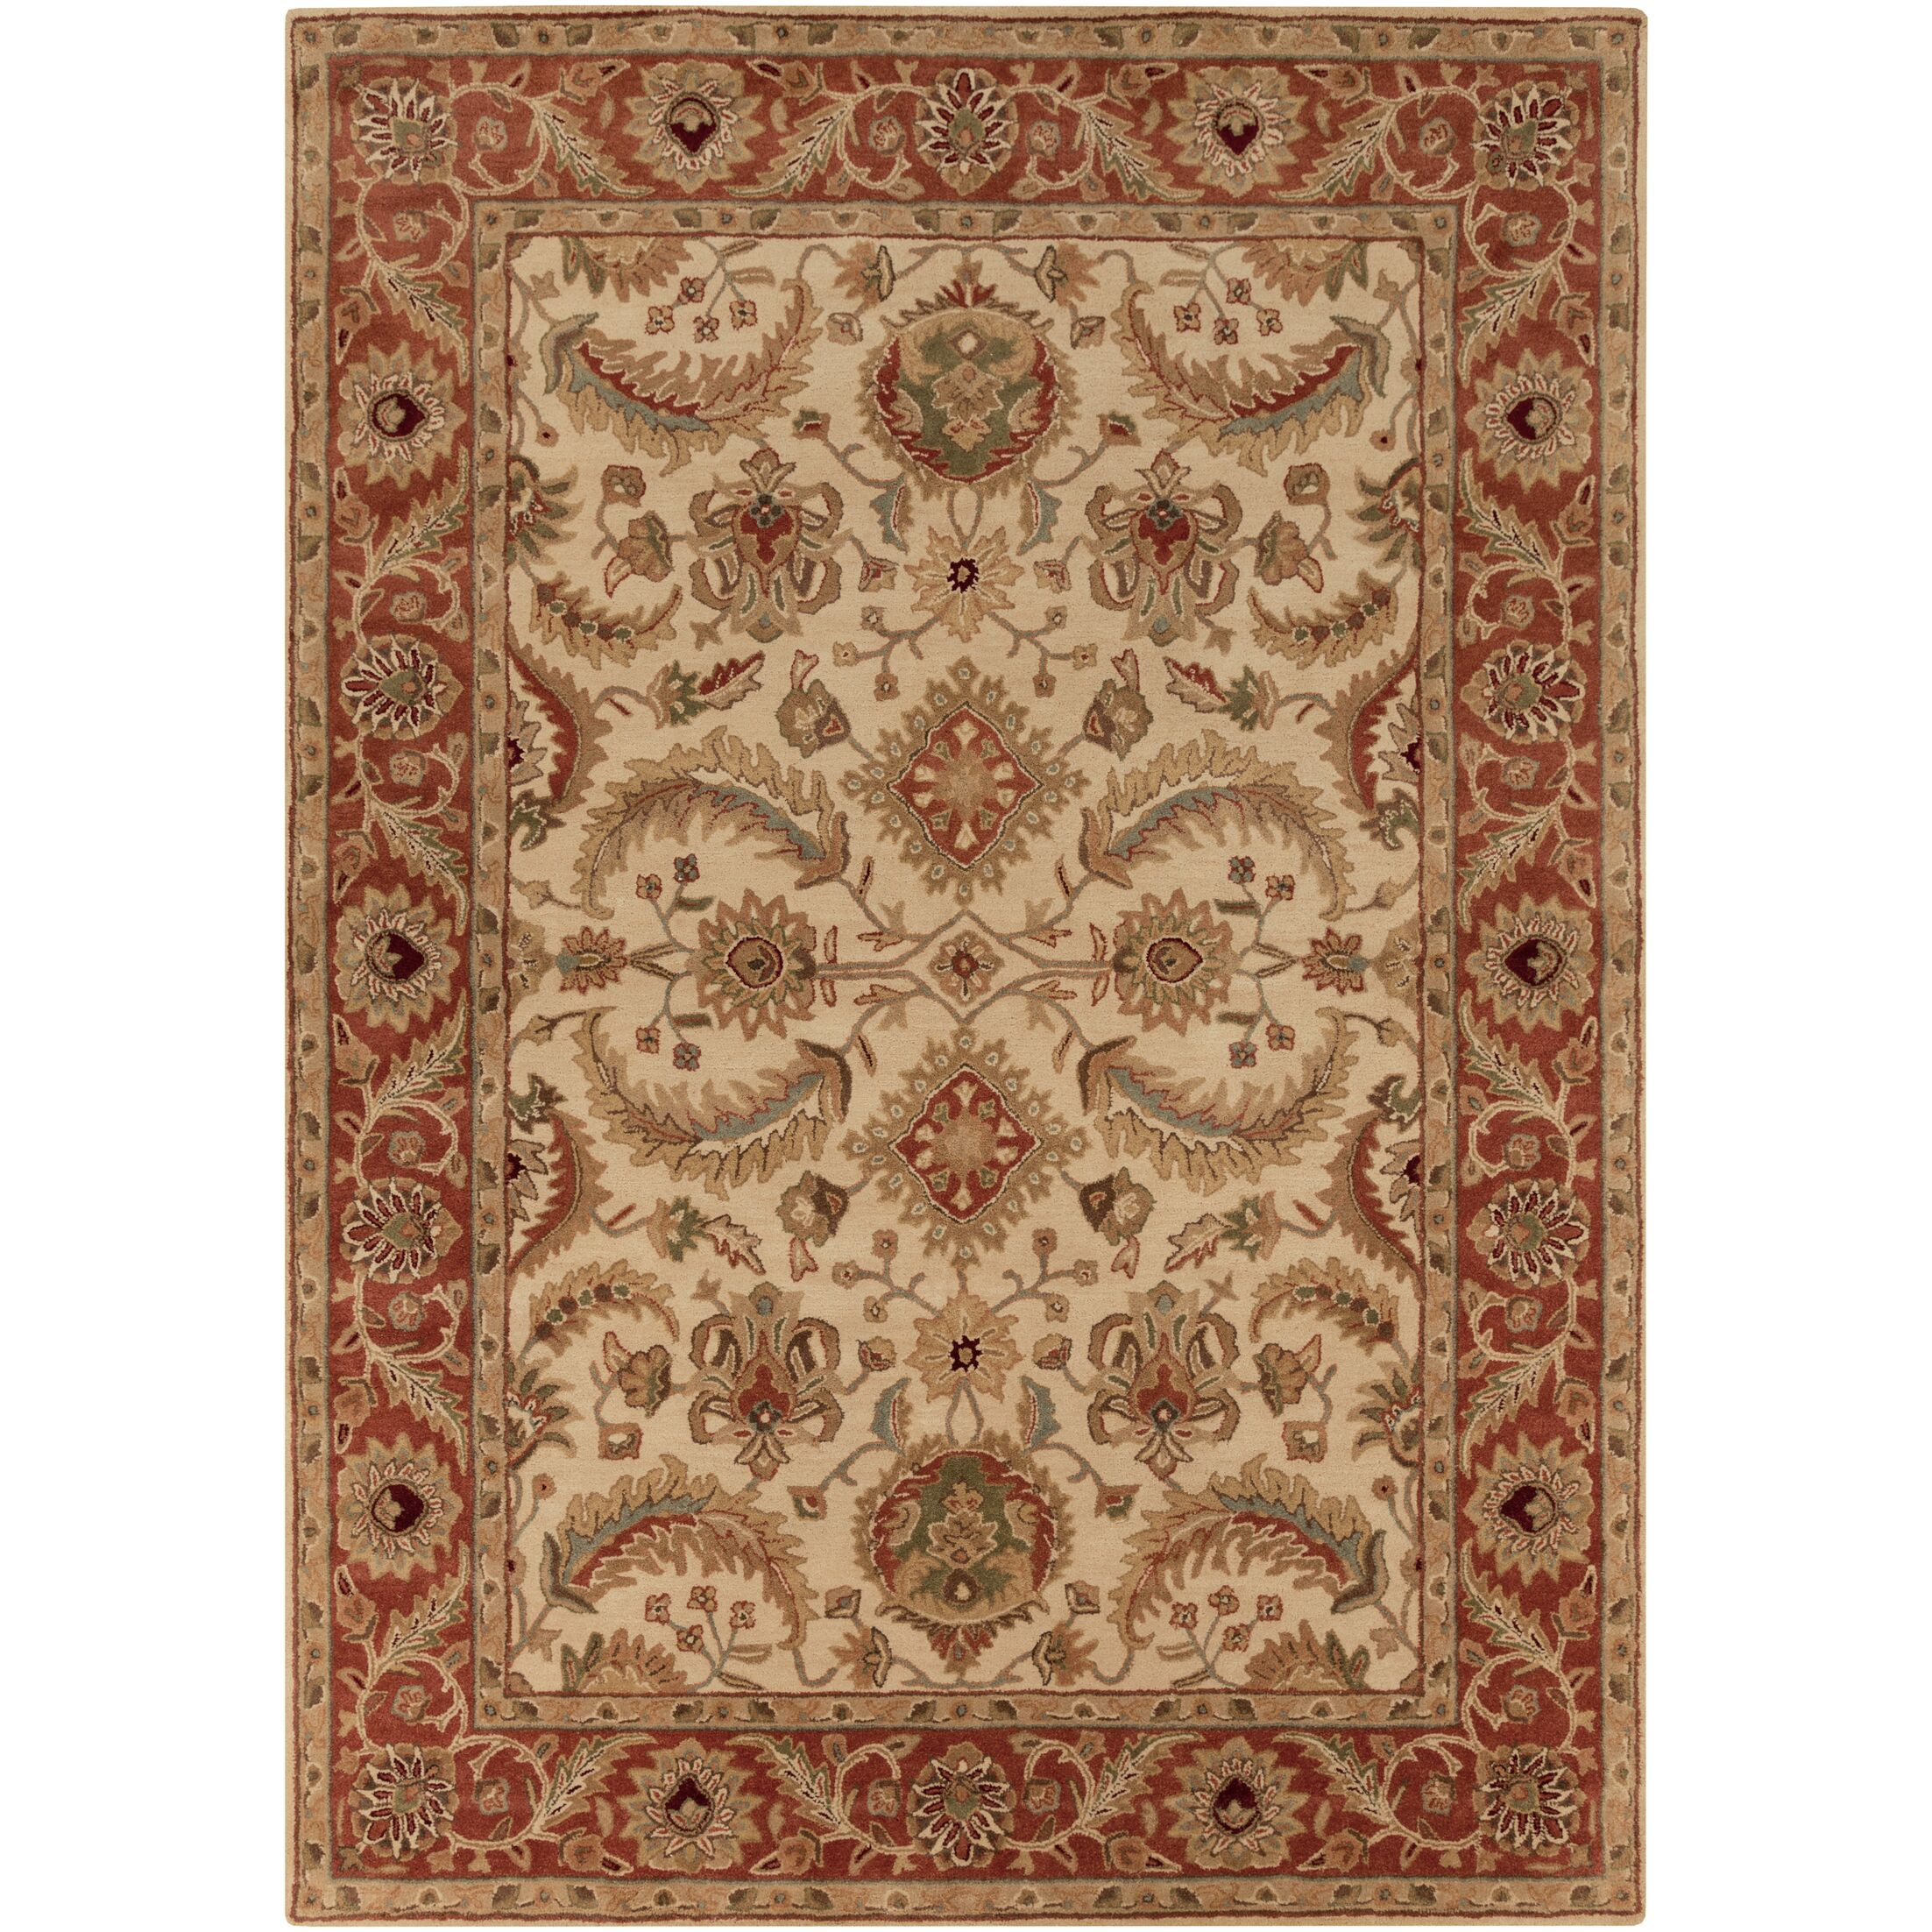 Arcadia Hand-Tufted Red/Brown Area Rug Rug Size: Rectangle 9' x 13'